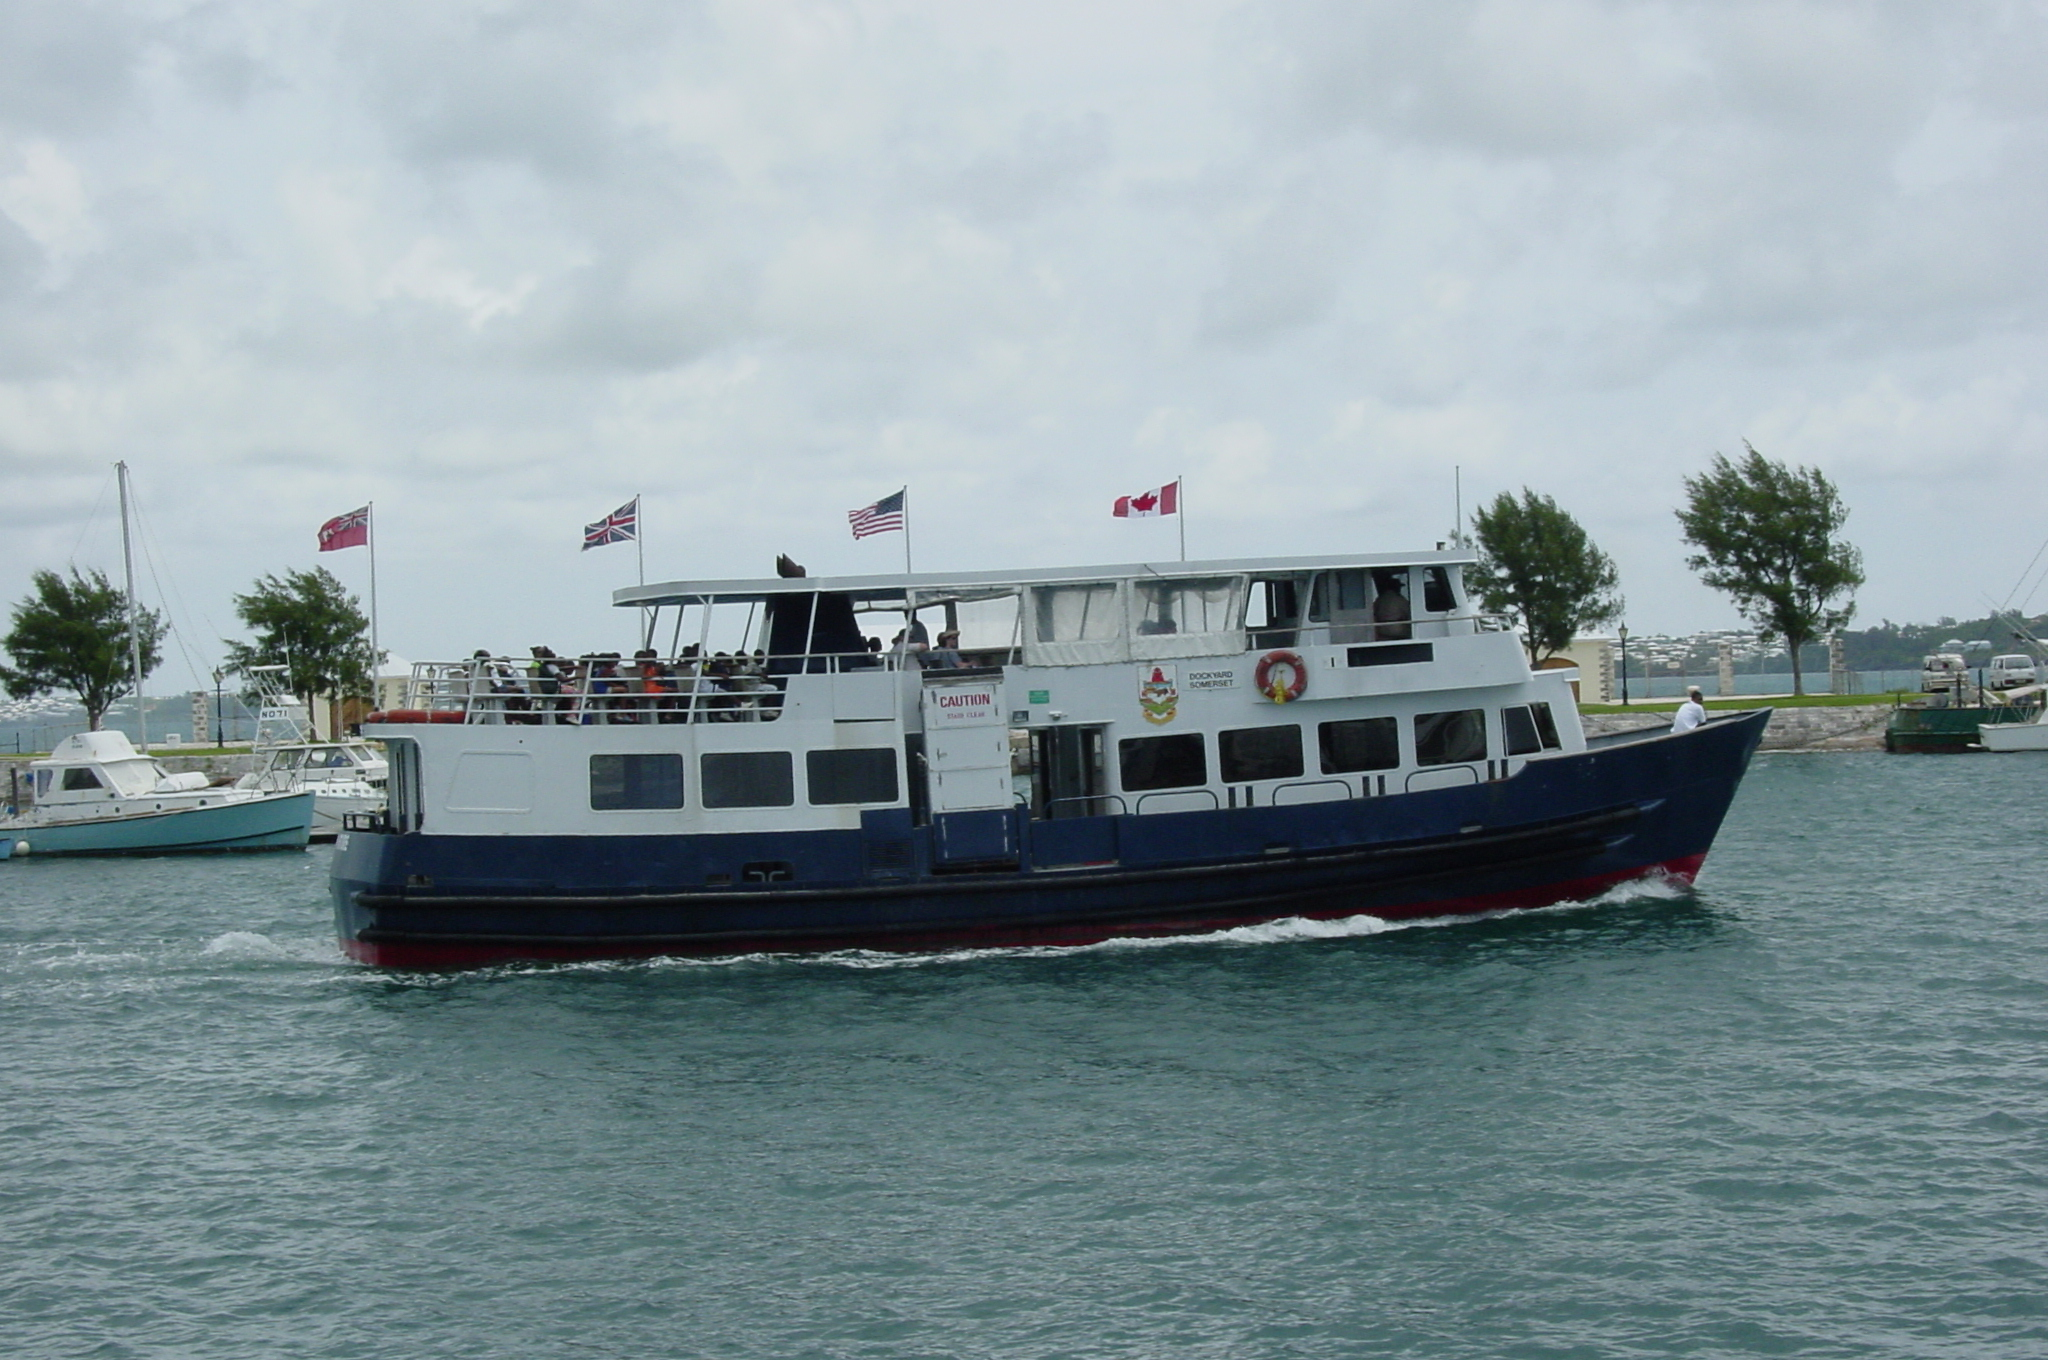 File:Bermuda Ferry Boat.JPG - Wikimedia Commons